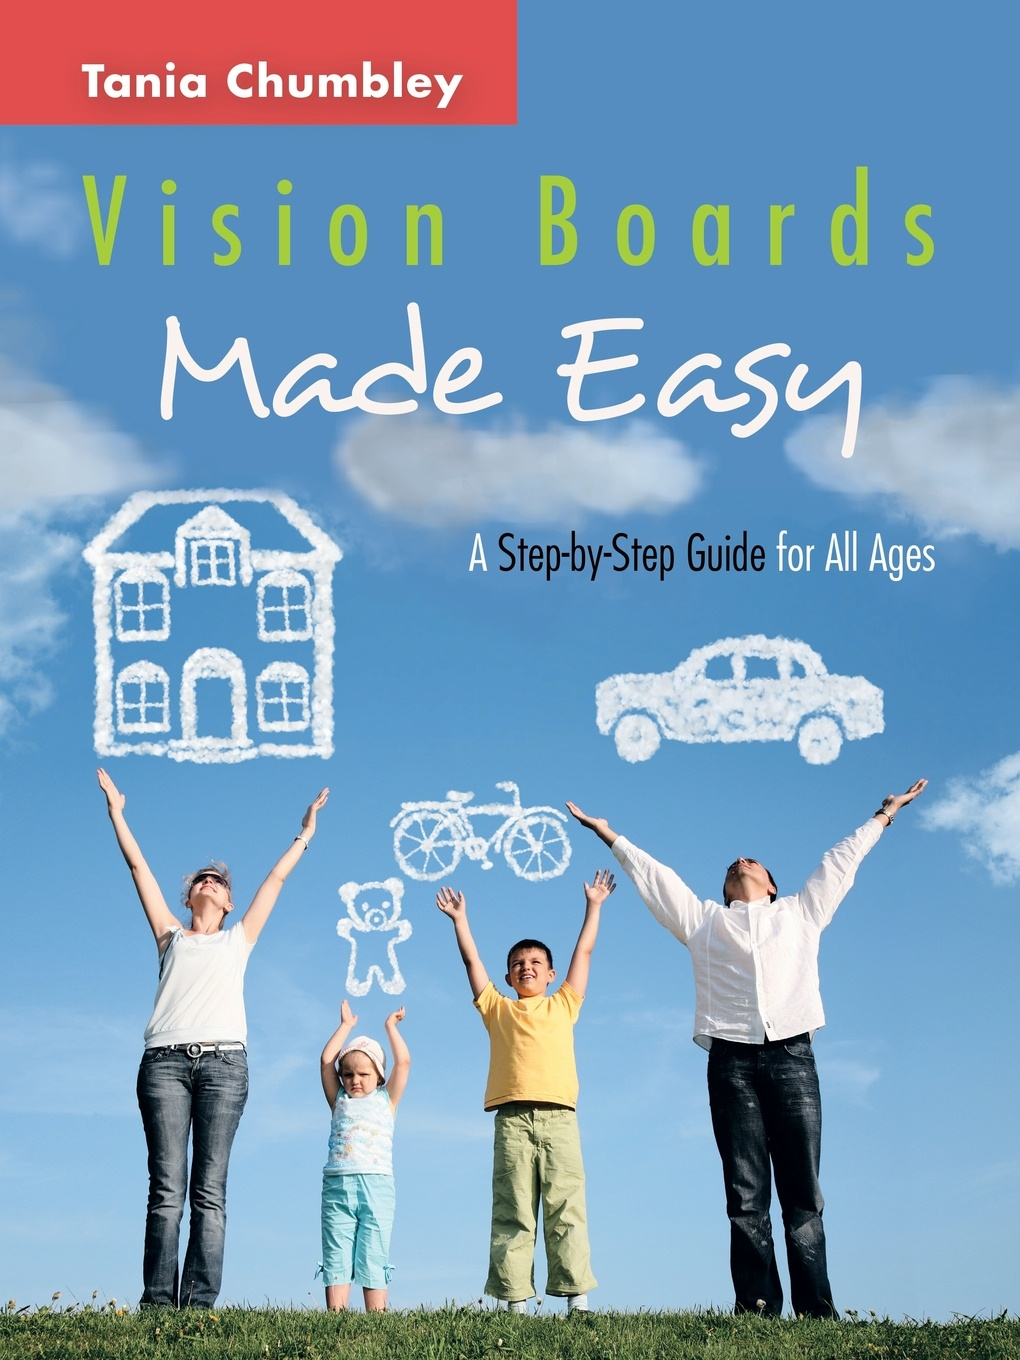 Фото - Tania Chumbley Vision Boards Made Easy. A Step by Step Guide module stm8a discovery include 2 boards stm8 development board embedded st link v2 can lin